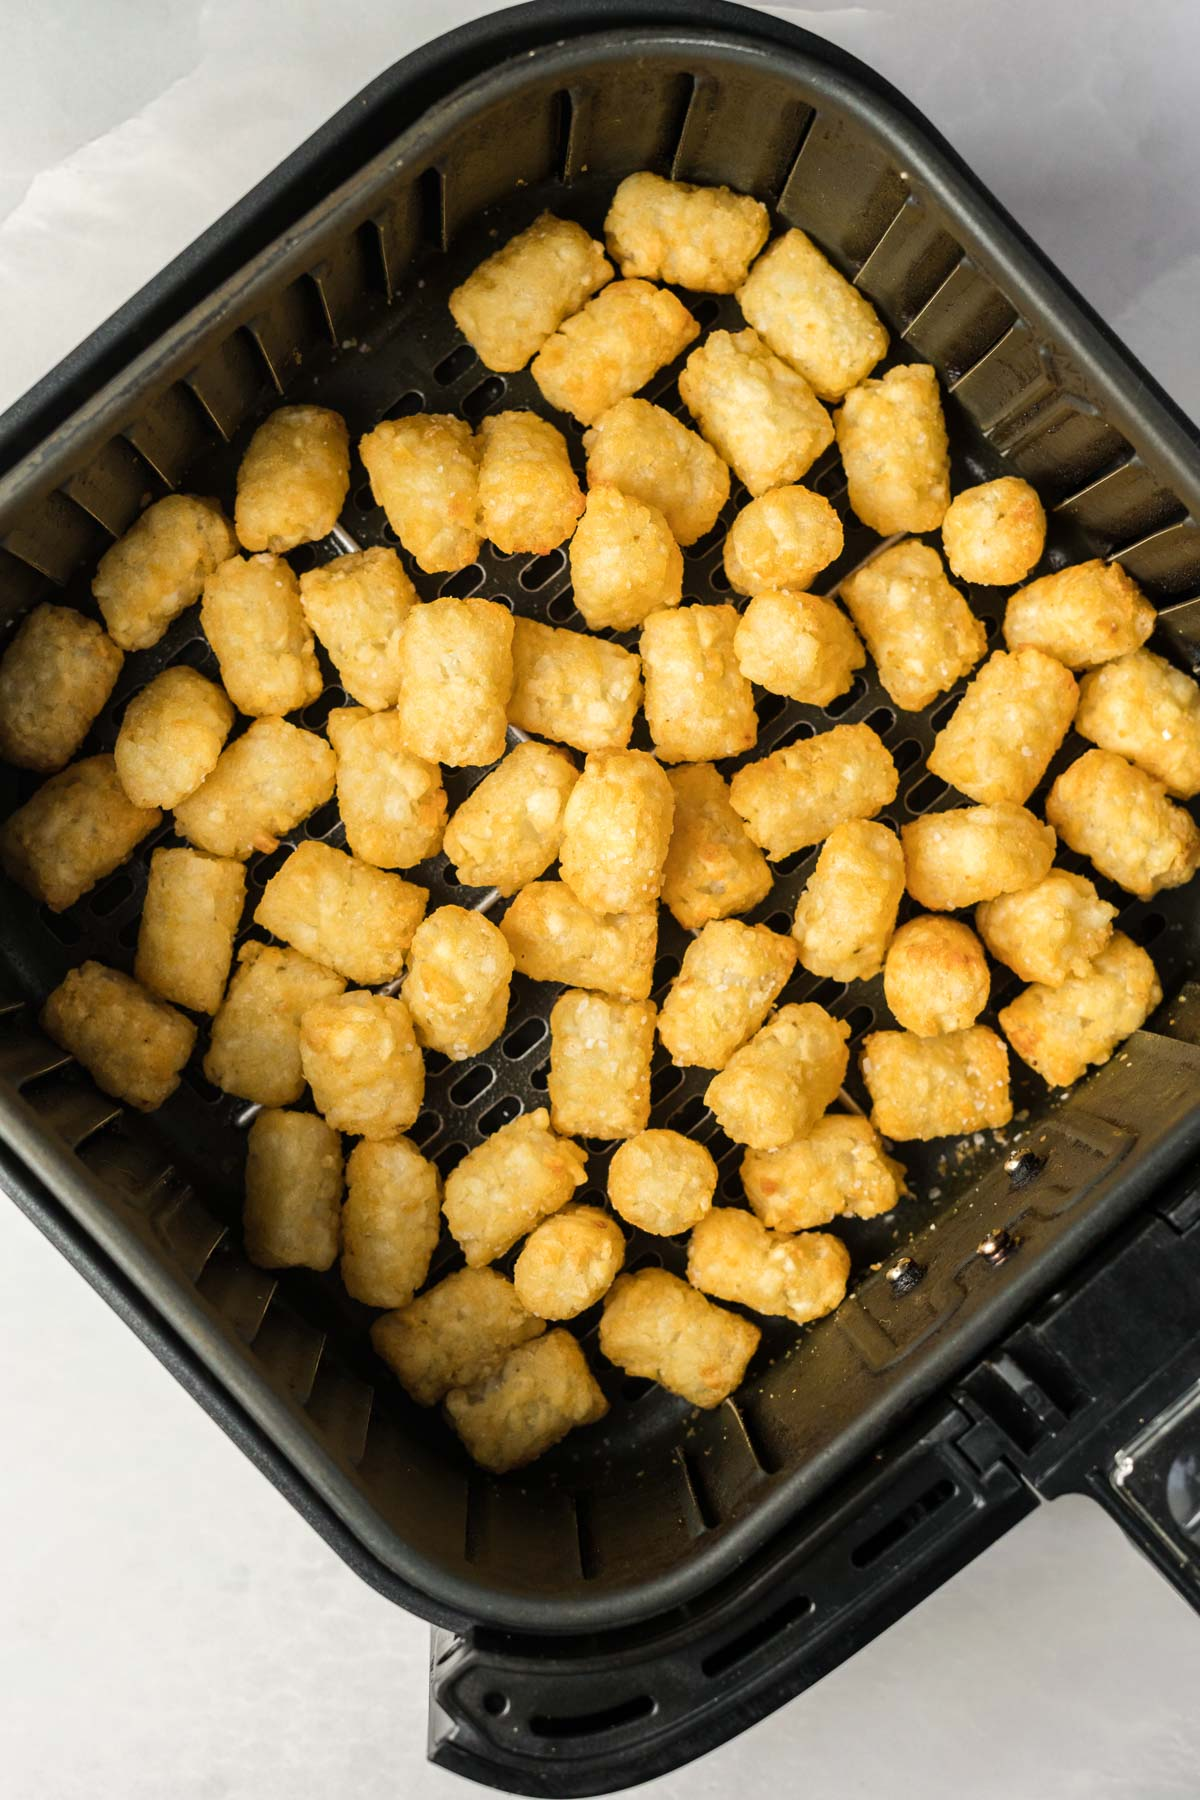 Tater tots in an air fryer basket.